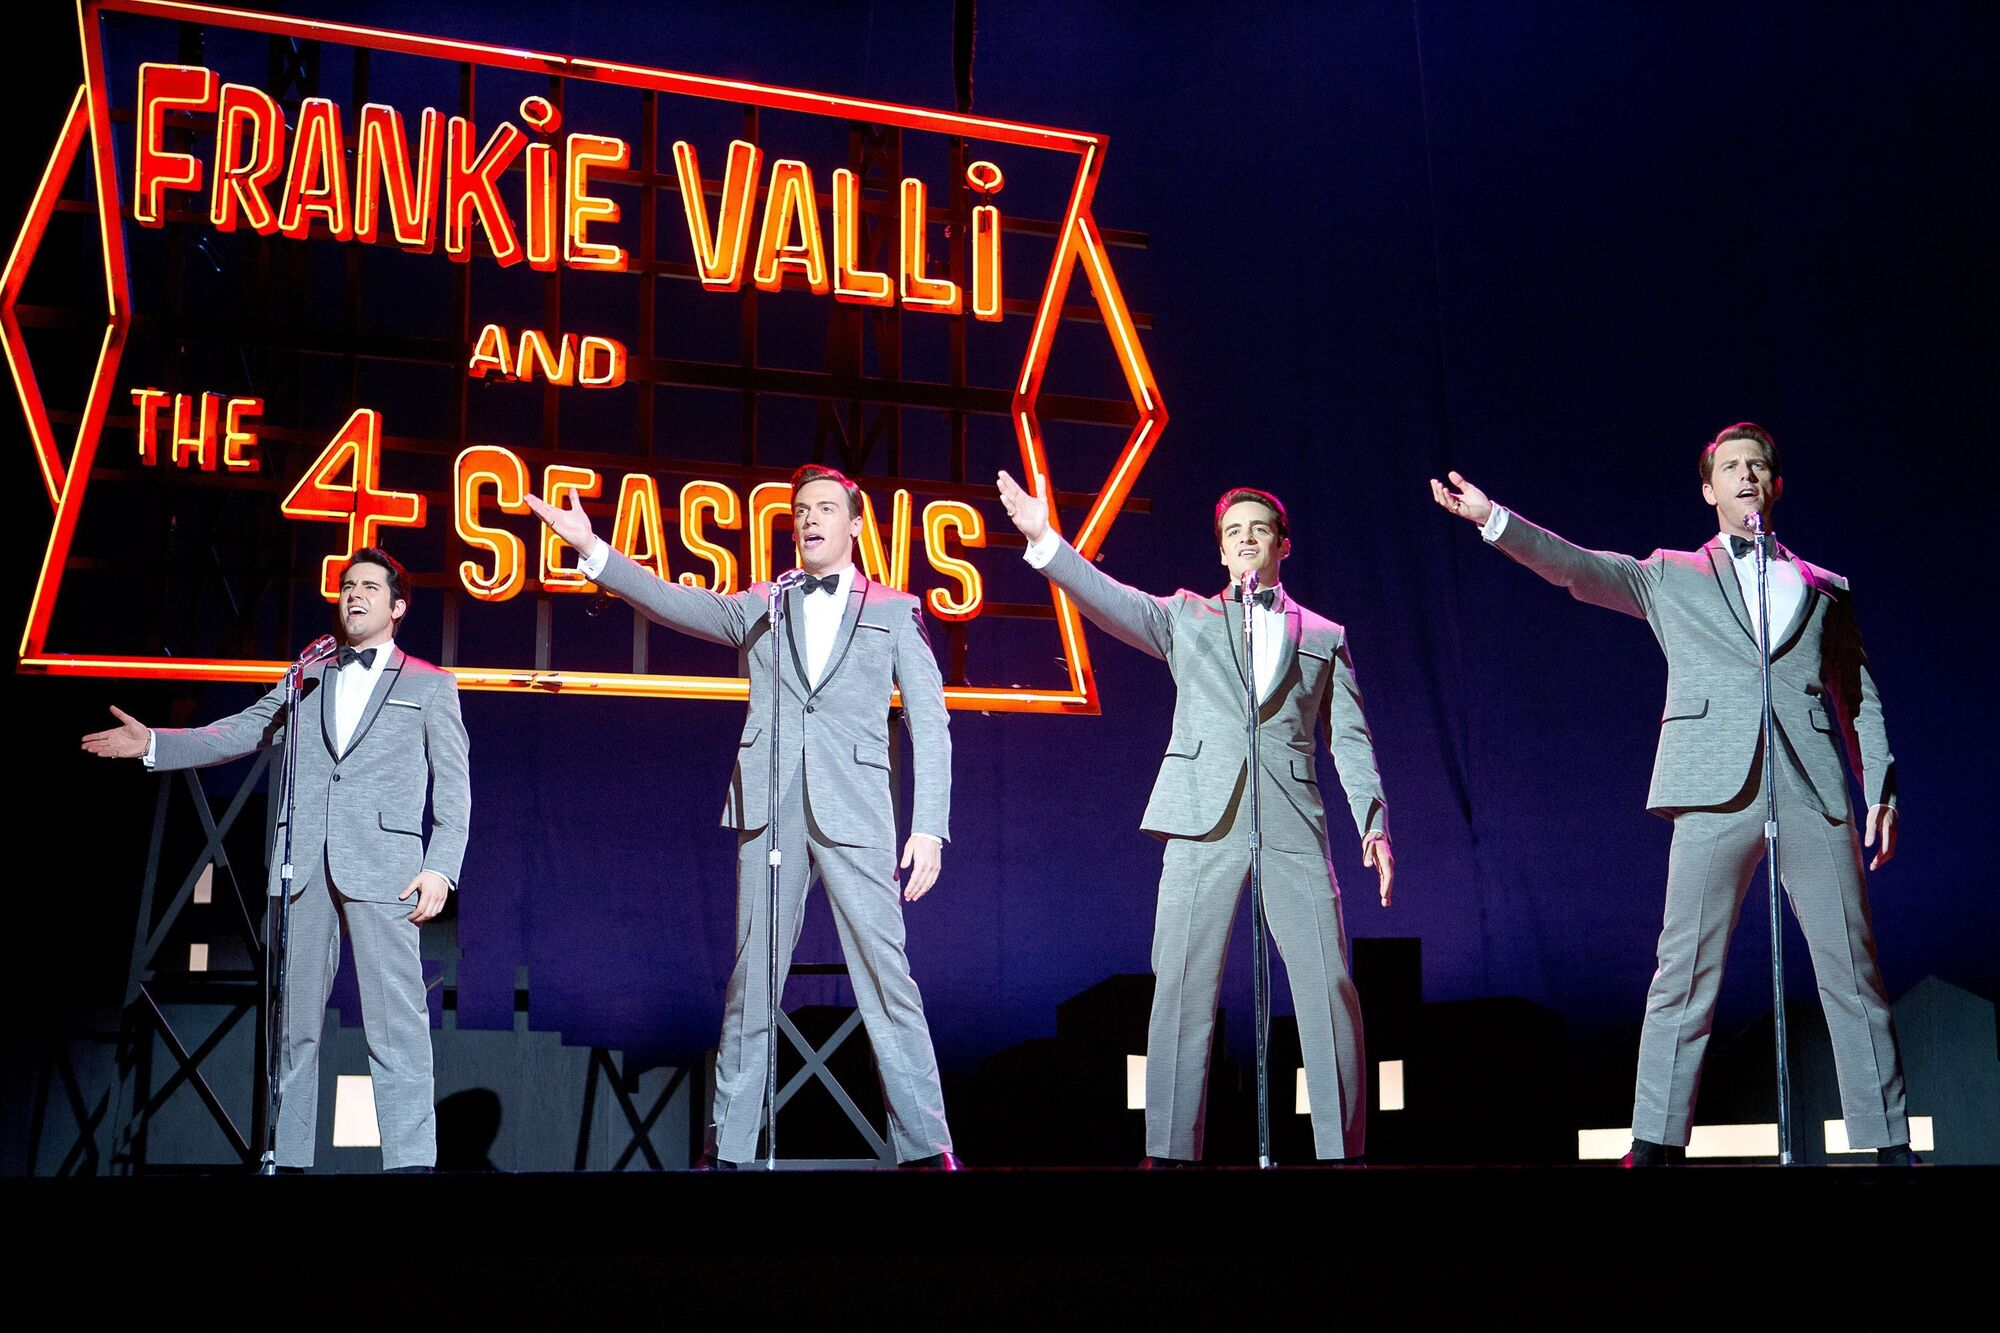 From left, John Lloyd Young as Frankie Valli, Erich Bergen as Bob Gaudio, Vincent Piazza as Tommy DeVito and Michael Lomenda as Nick Massi in Warner Bros. Pictures' musical